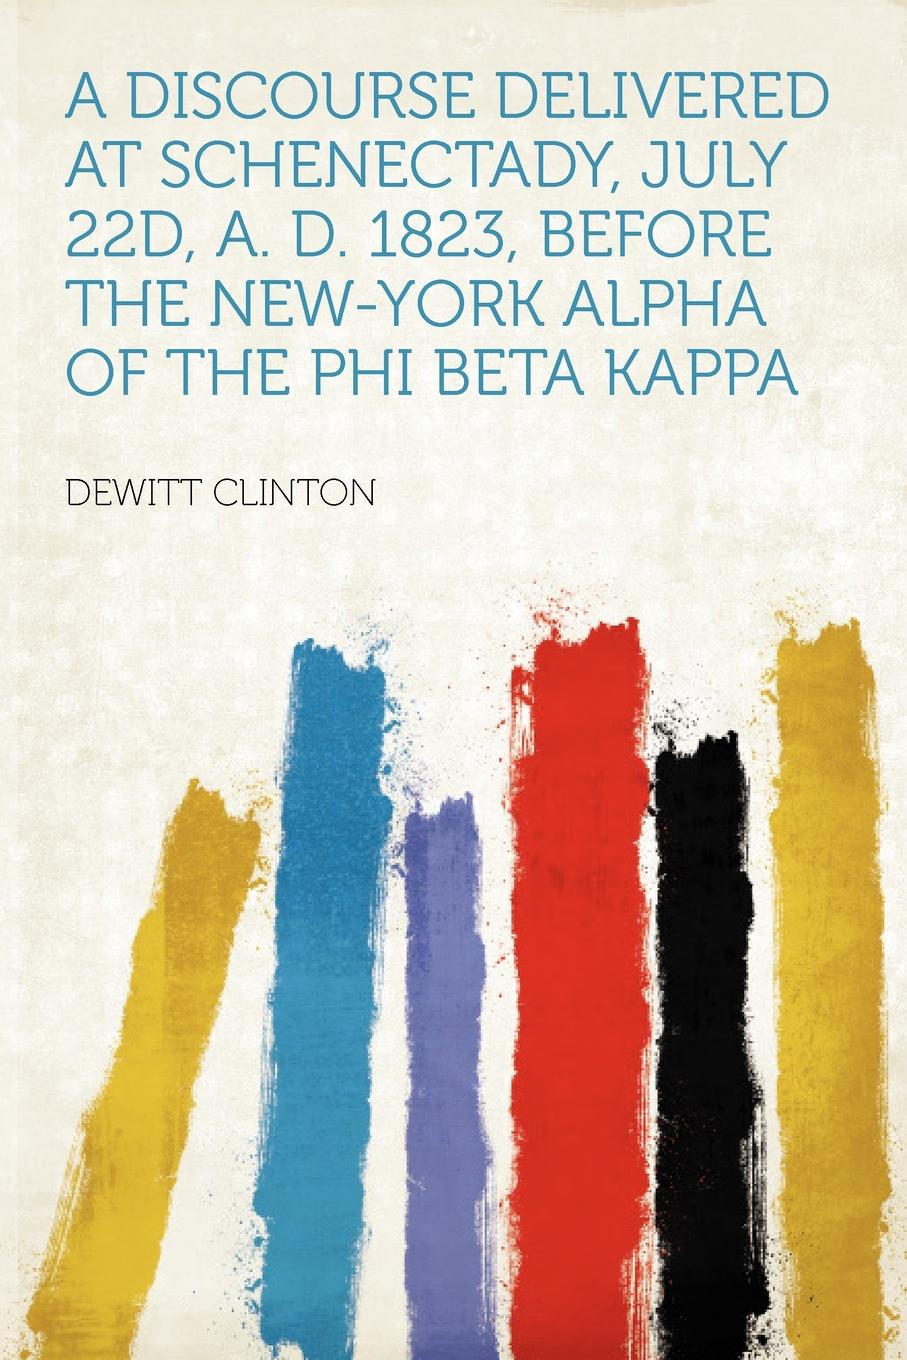 A Discourse Delivered at Schenectady, July 22d, A. D. 1823, Before the New-York Alpha of the Phi Beta Kappa the centenary of alpha of new york of phi beta kappa celebrated at union